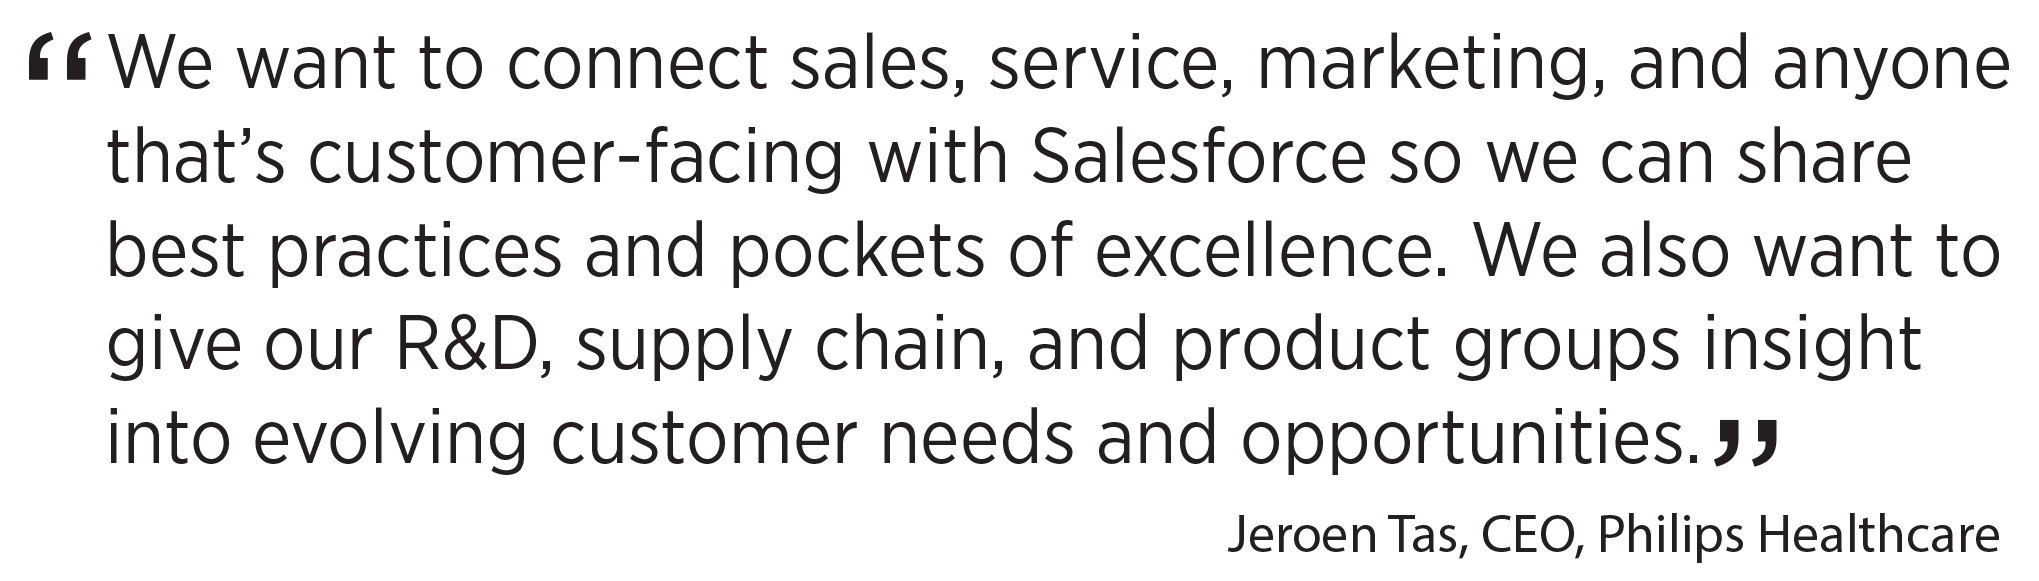 'We want to connect sales, service, marketing, and anyone that's customer-facing with Salesforce so we can share best practices and pockets of excellence. We also want to give our R&D, supply chain, and product groups insight into evolving customer needs and opportunities.' Jeroen Tas, CEO, Philips Healthcare